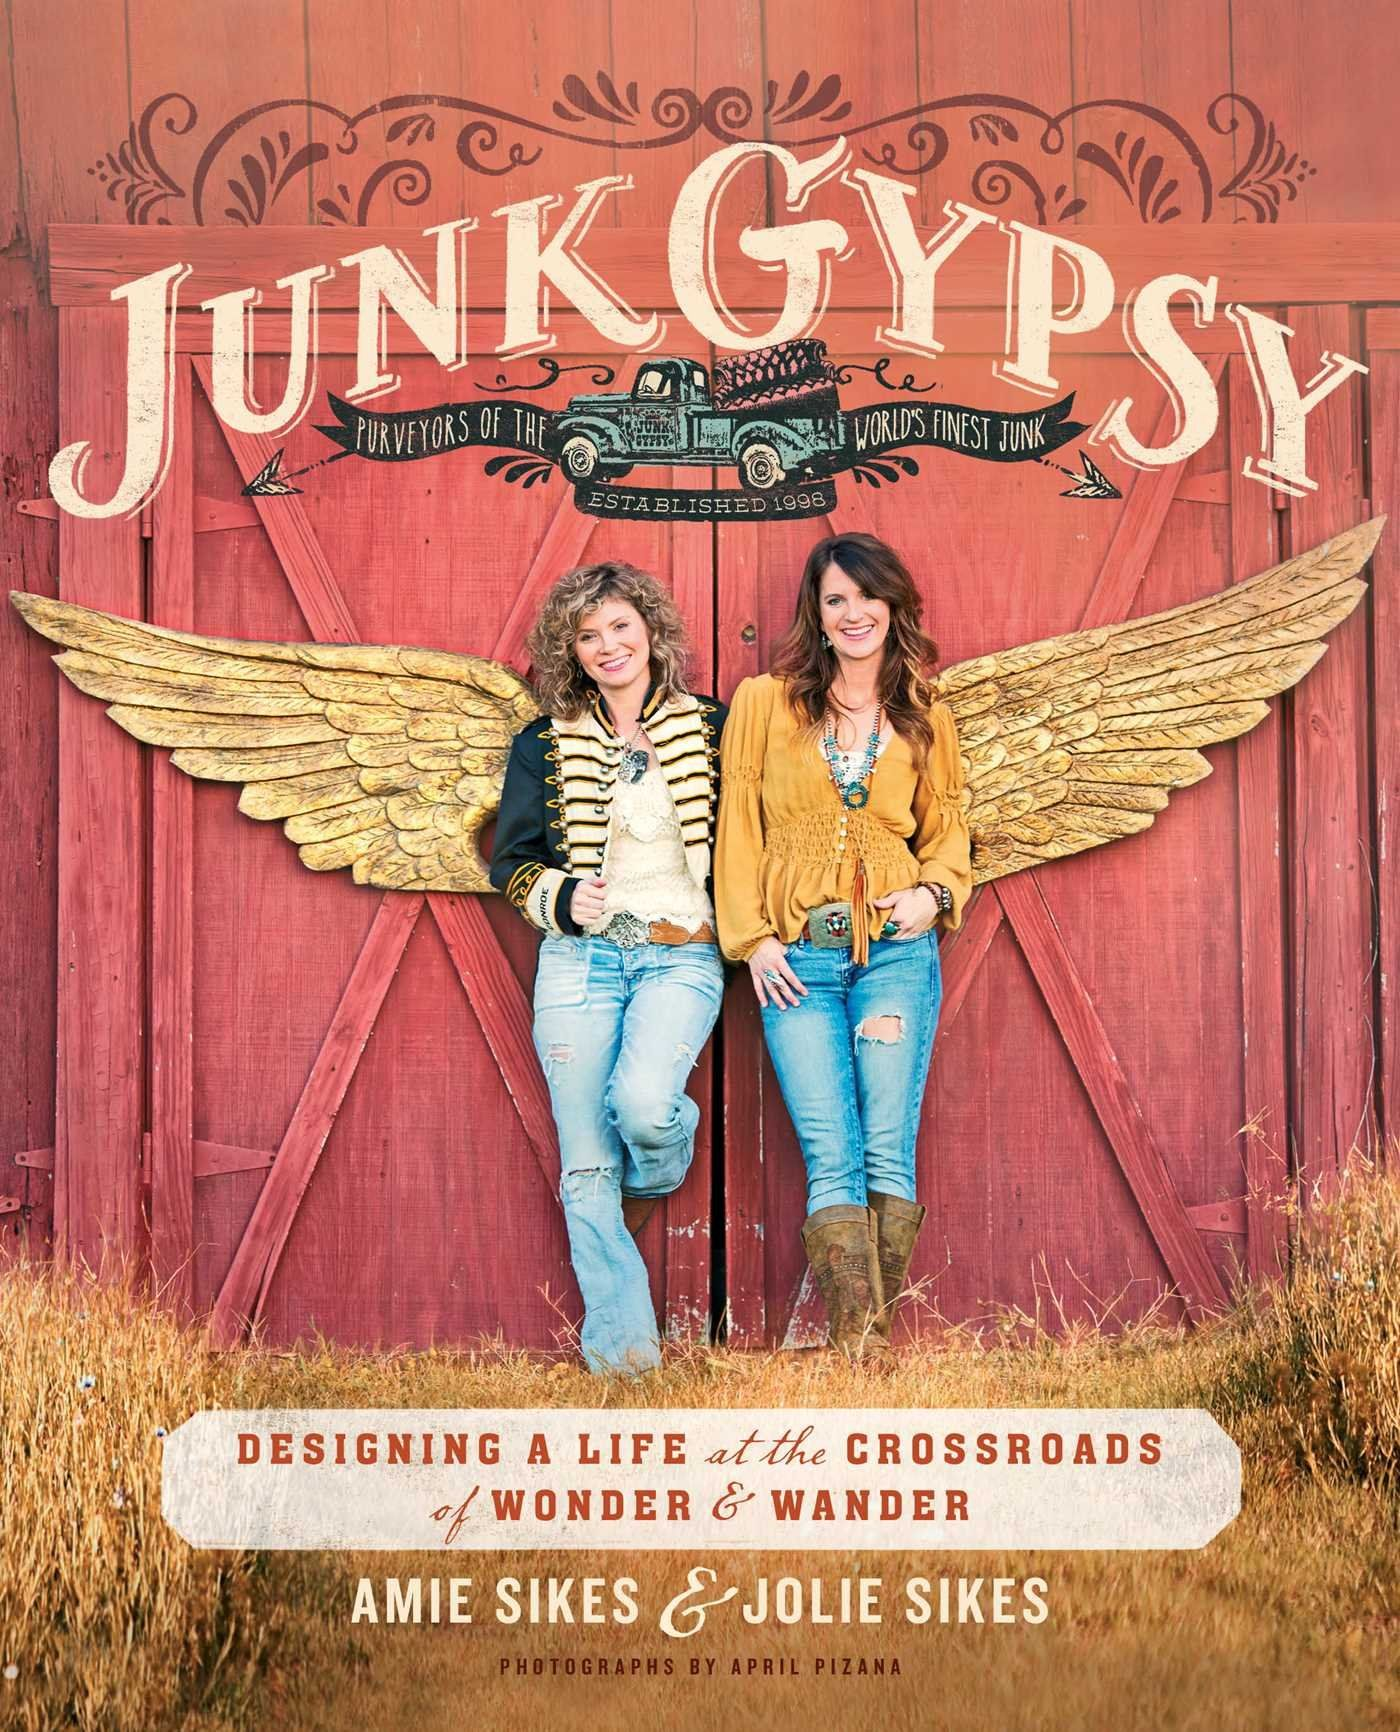 Junk Gypsy Book: Designing a Life at the Crossroads of Wonder & Wander